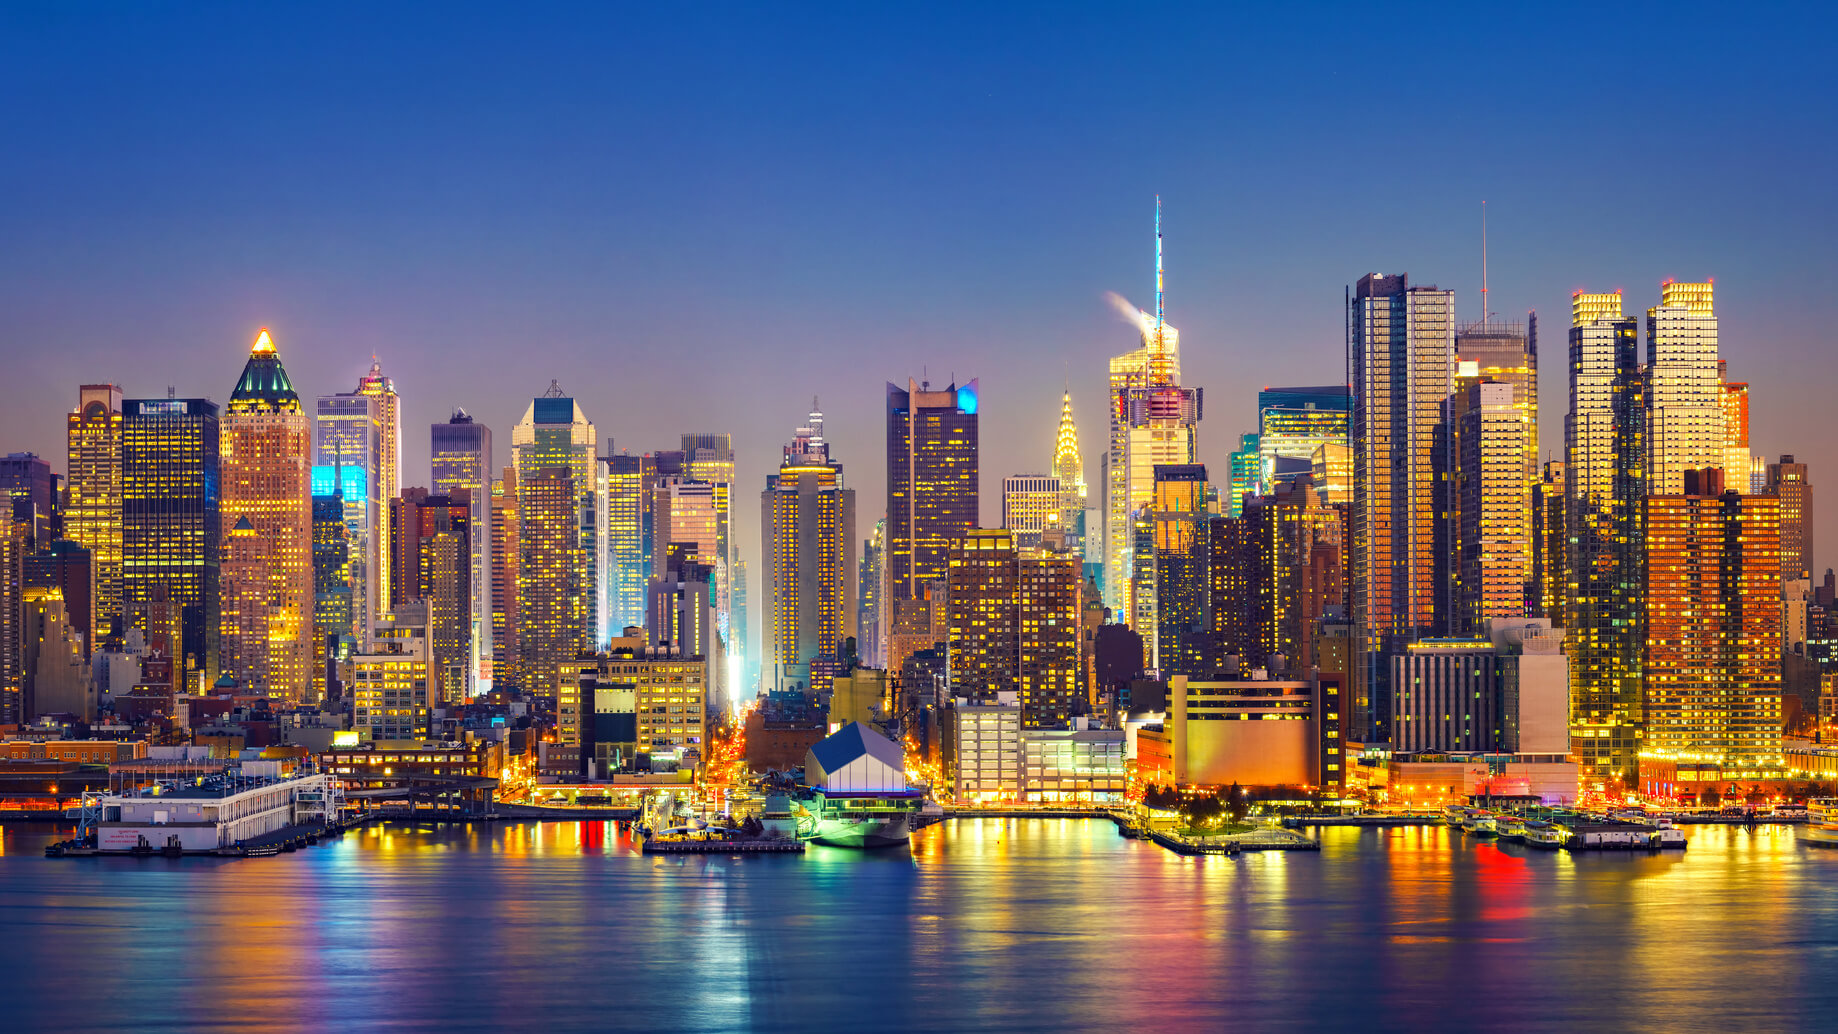 Best things to do in new york city move to america for Best places to go in nyc at night